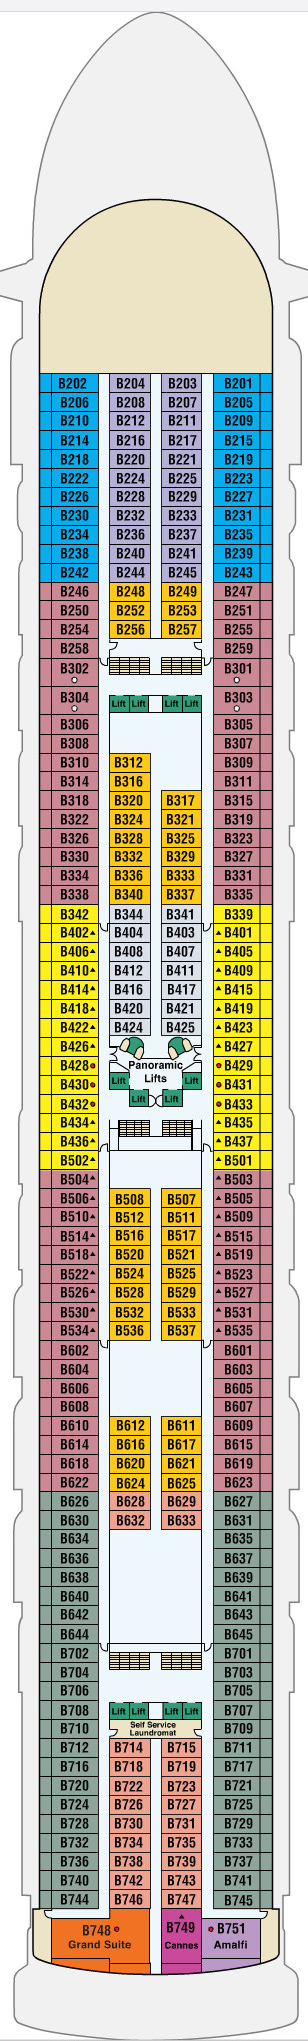 Star Princess Baja Deck 11 layout